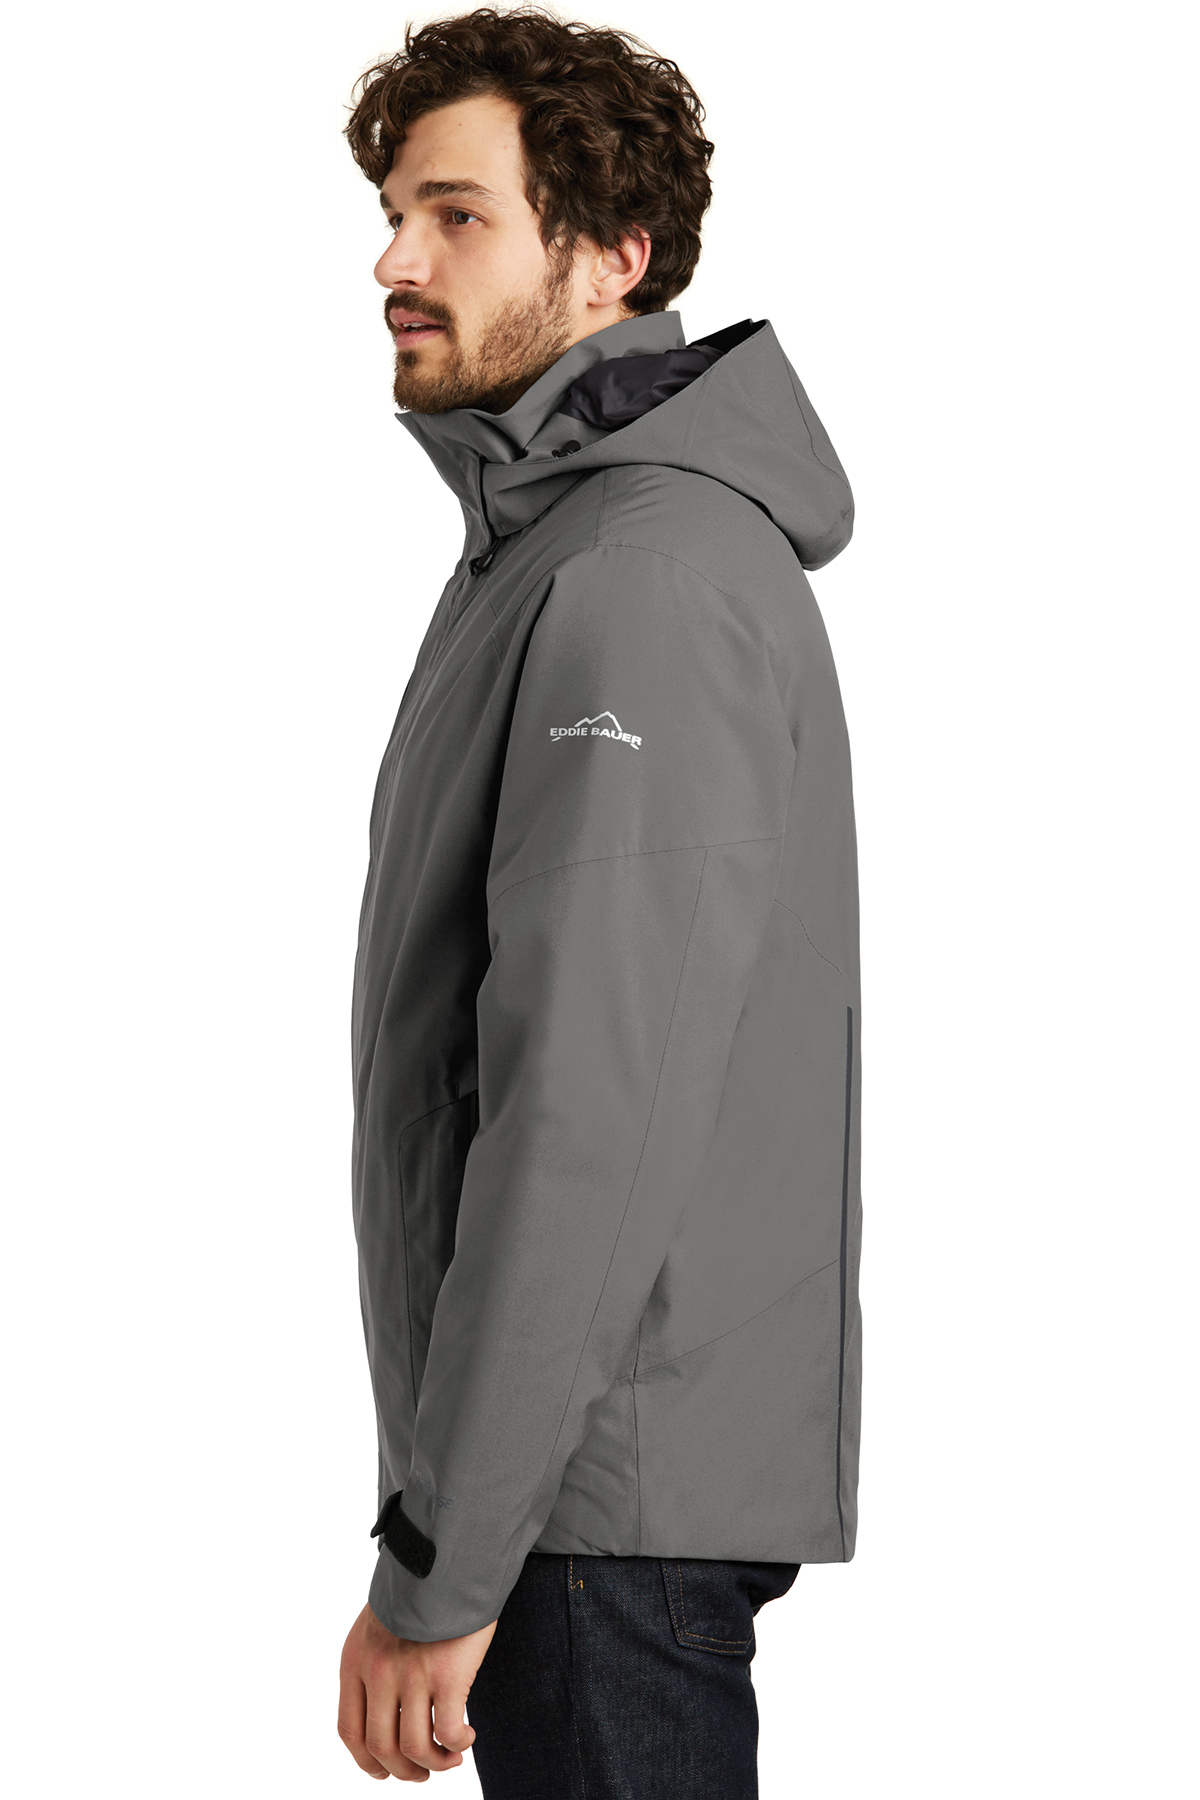 91beb6985 Eddie Bauer® WeatherEdge® Plus Insulated Jacket | Insulated Jackets ...